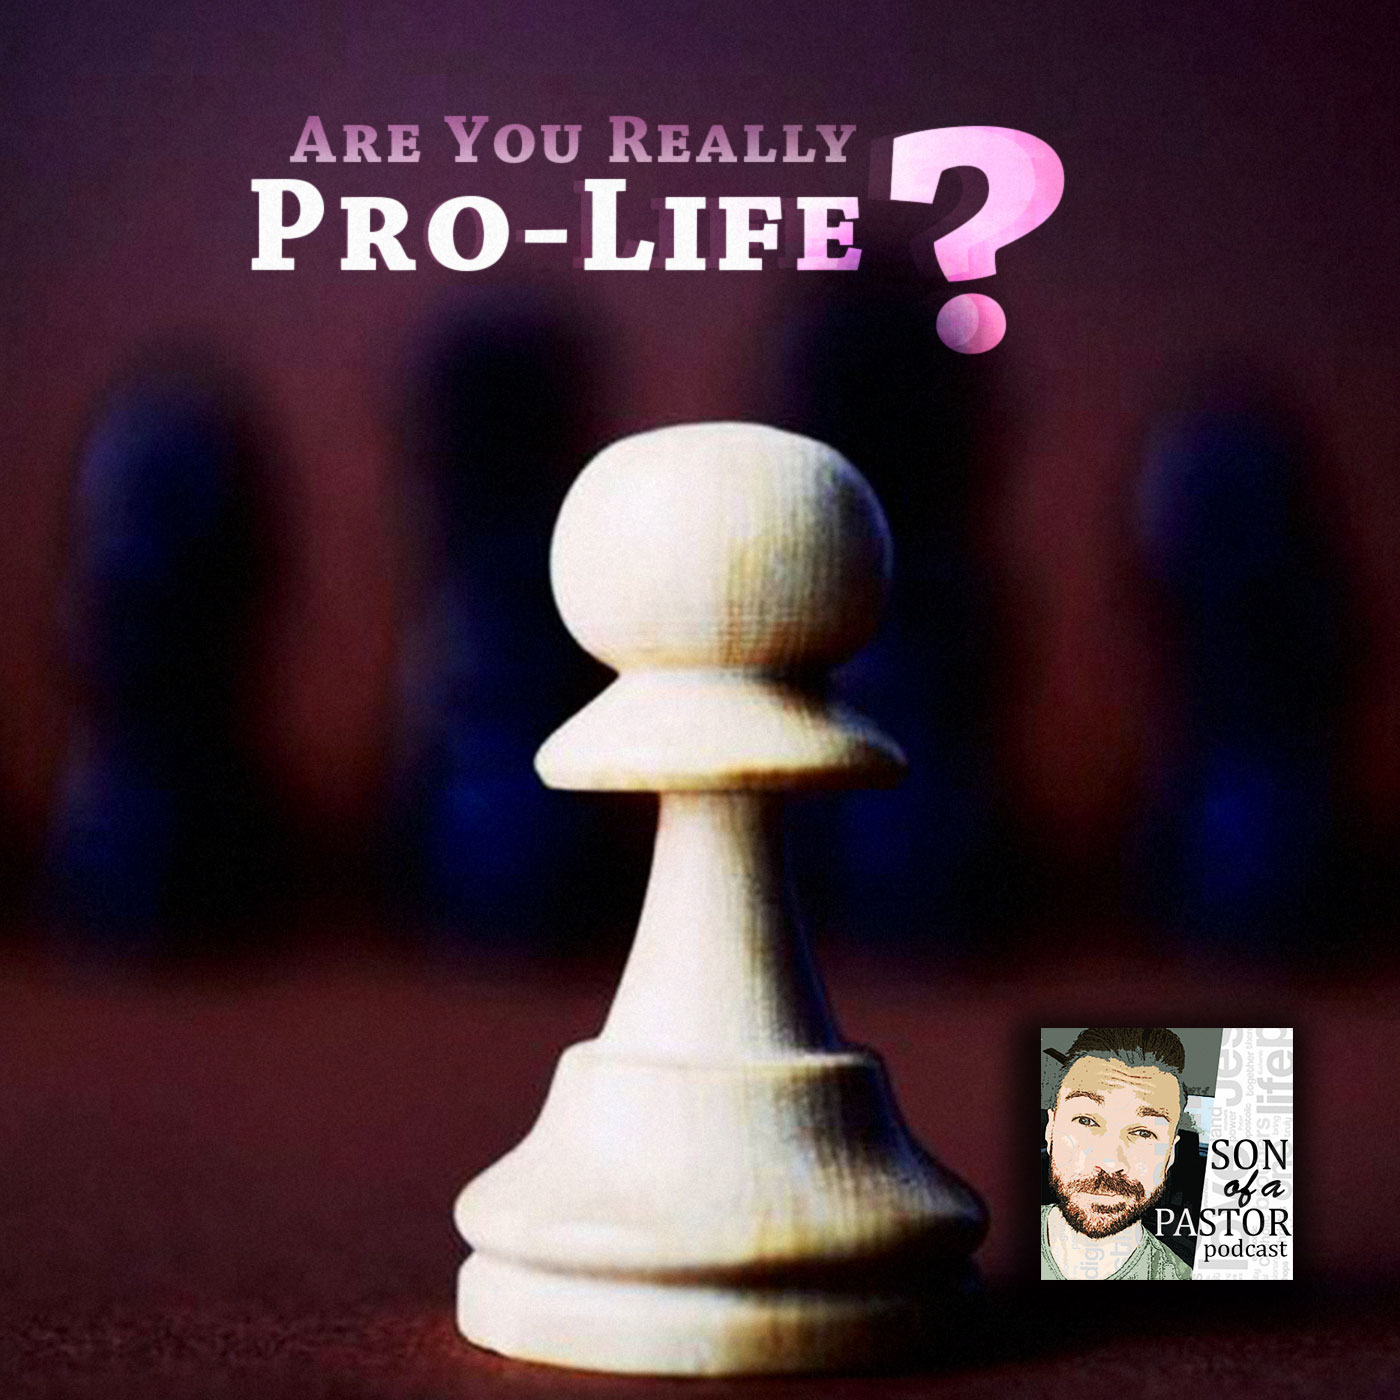 Are You Really Pro-Life? - Episode 24